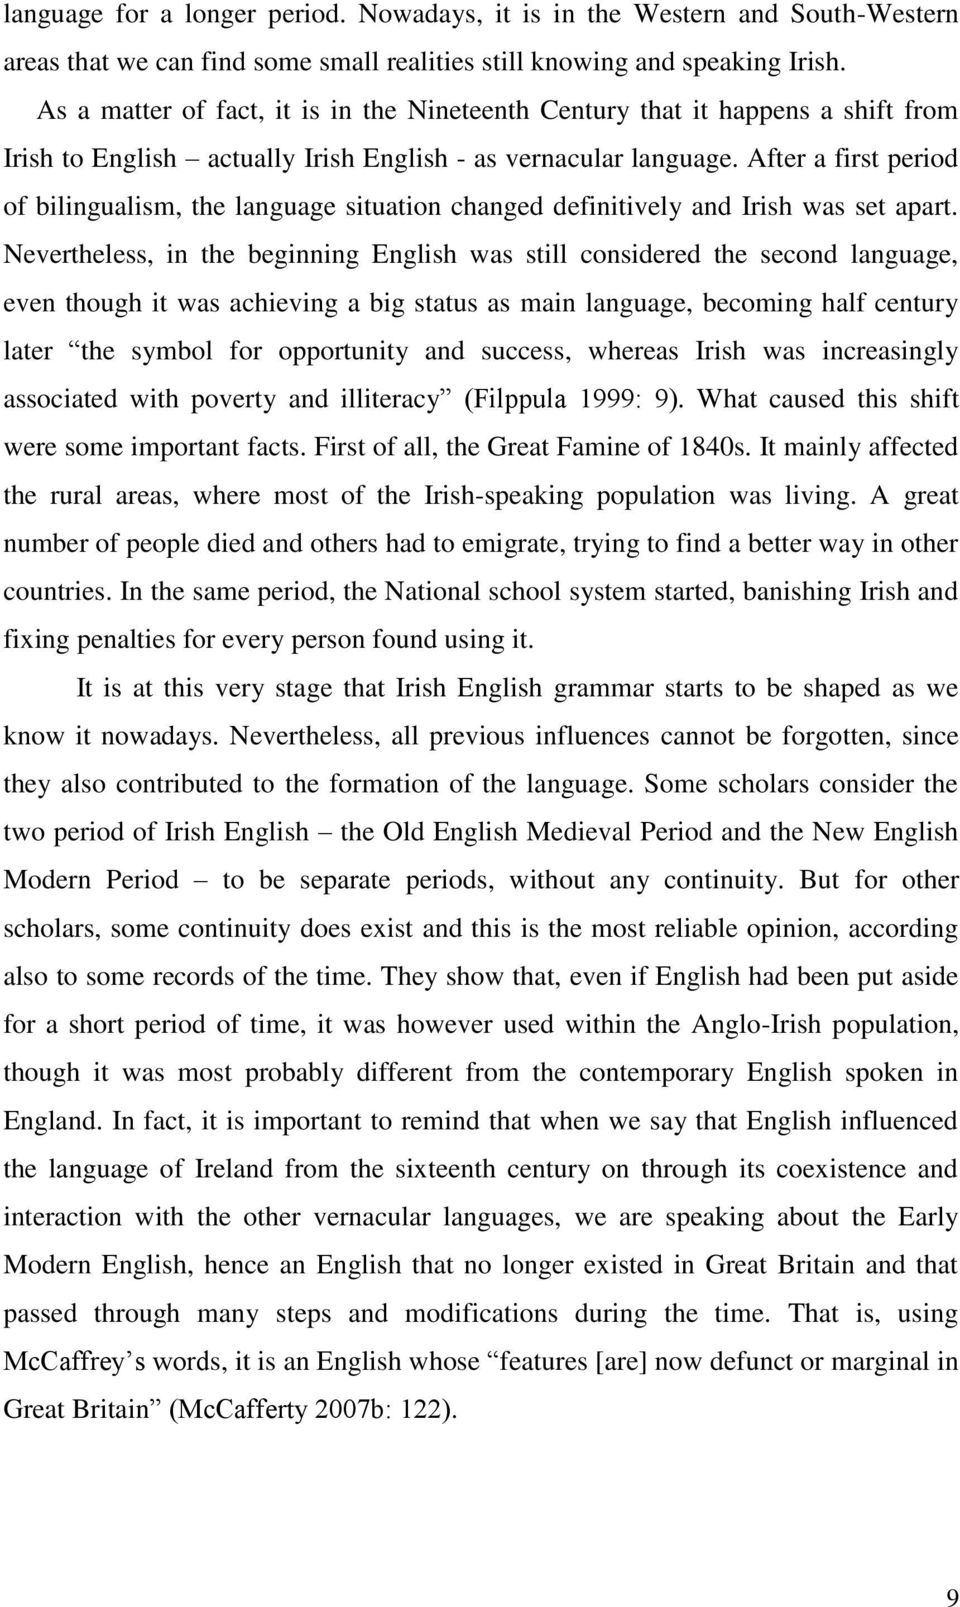 After a first period of bilingualism, the language situation changed definitively and Irish was set apart.